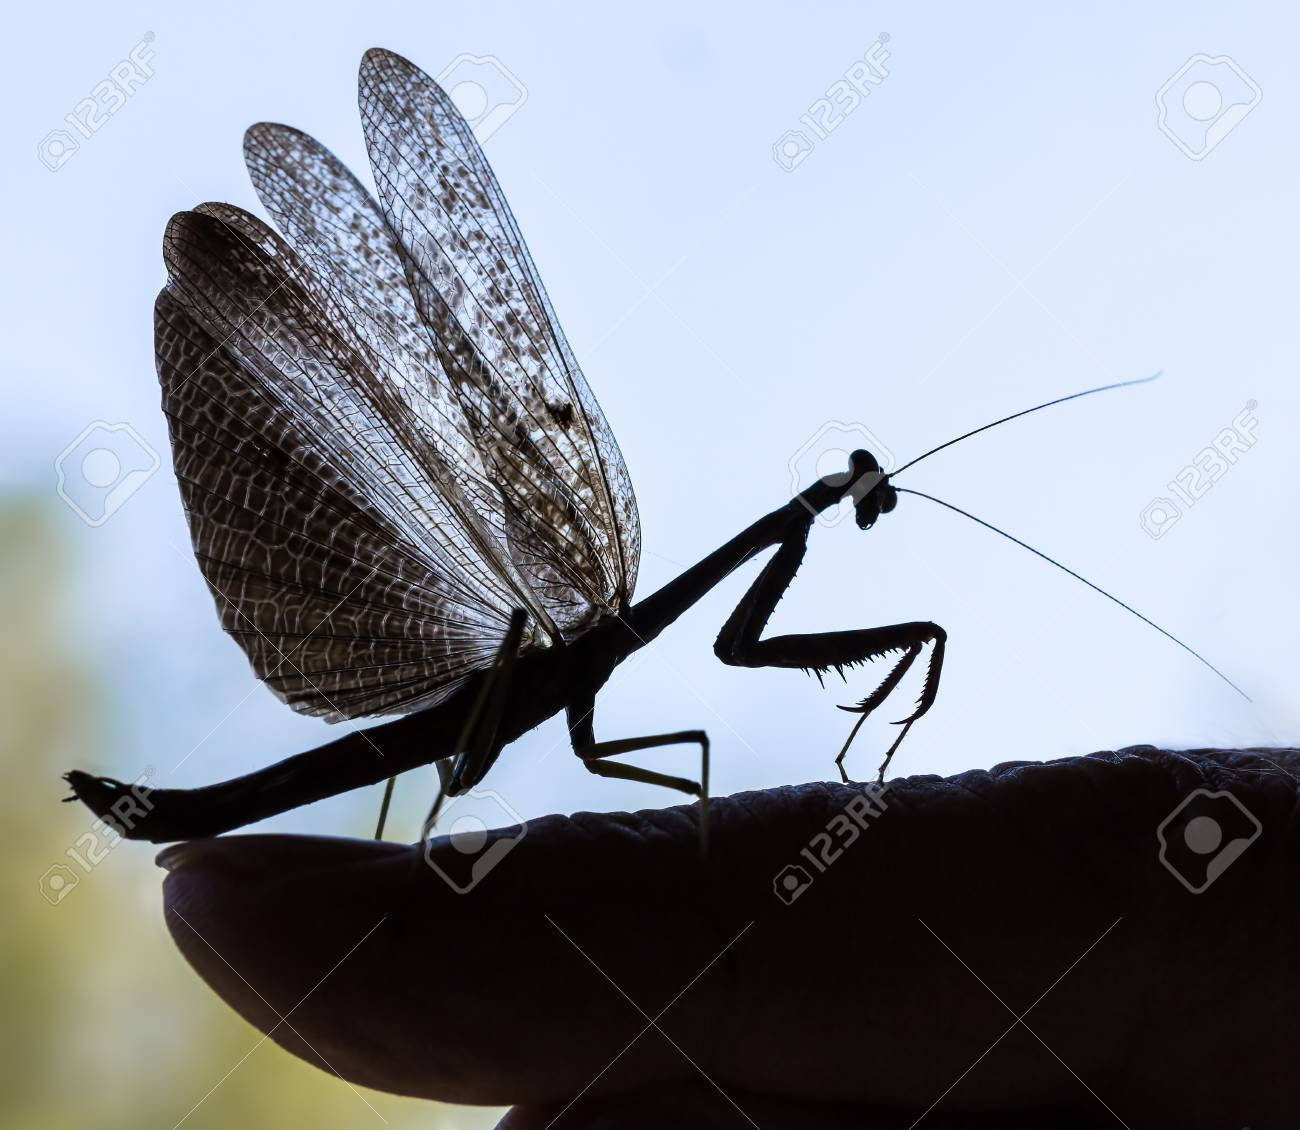 Praying Mantis With Spreaded Wings Sitting On The Finger Stock